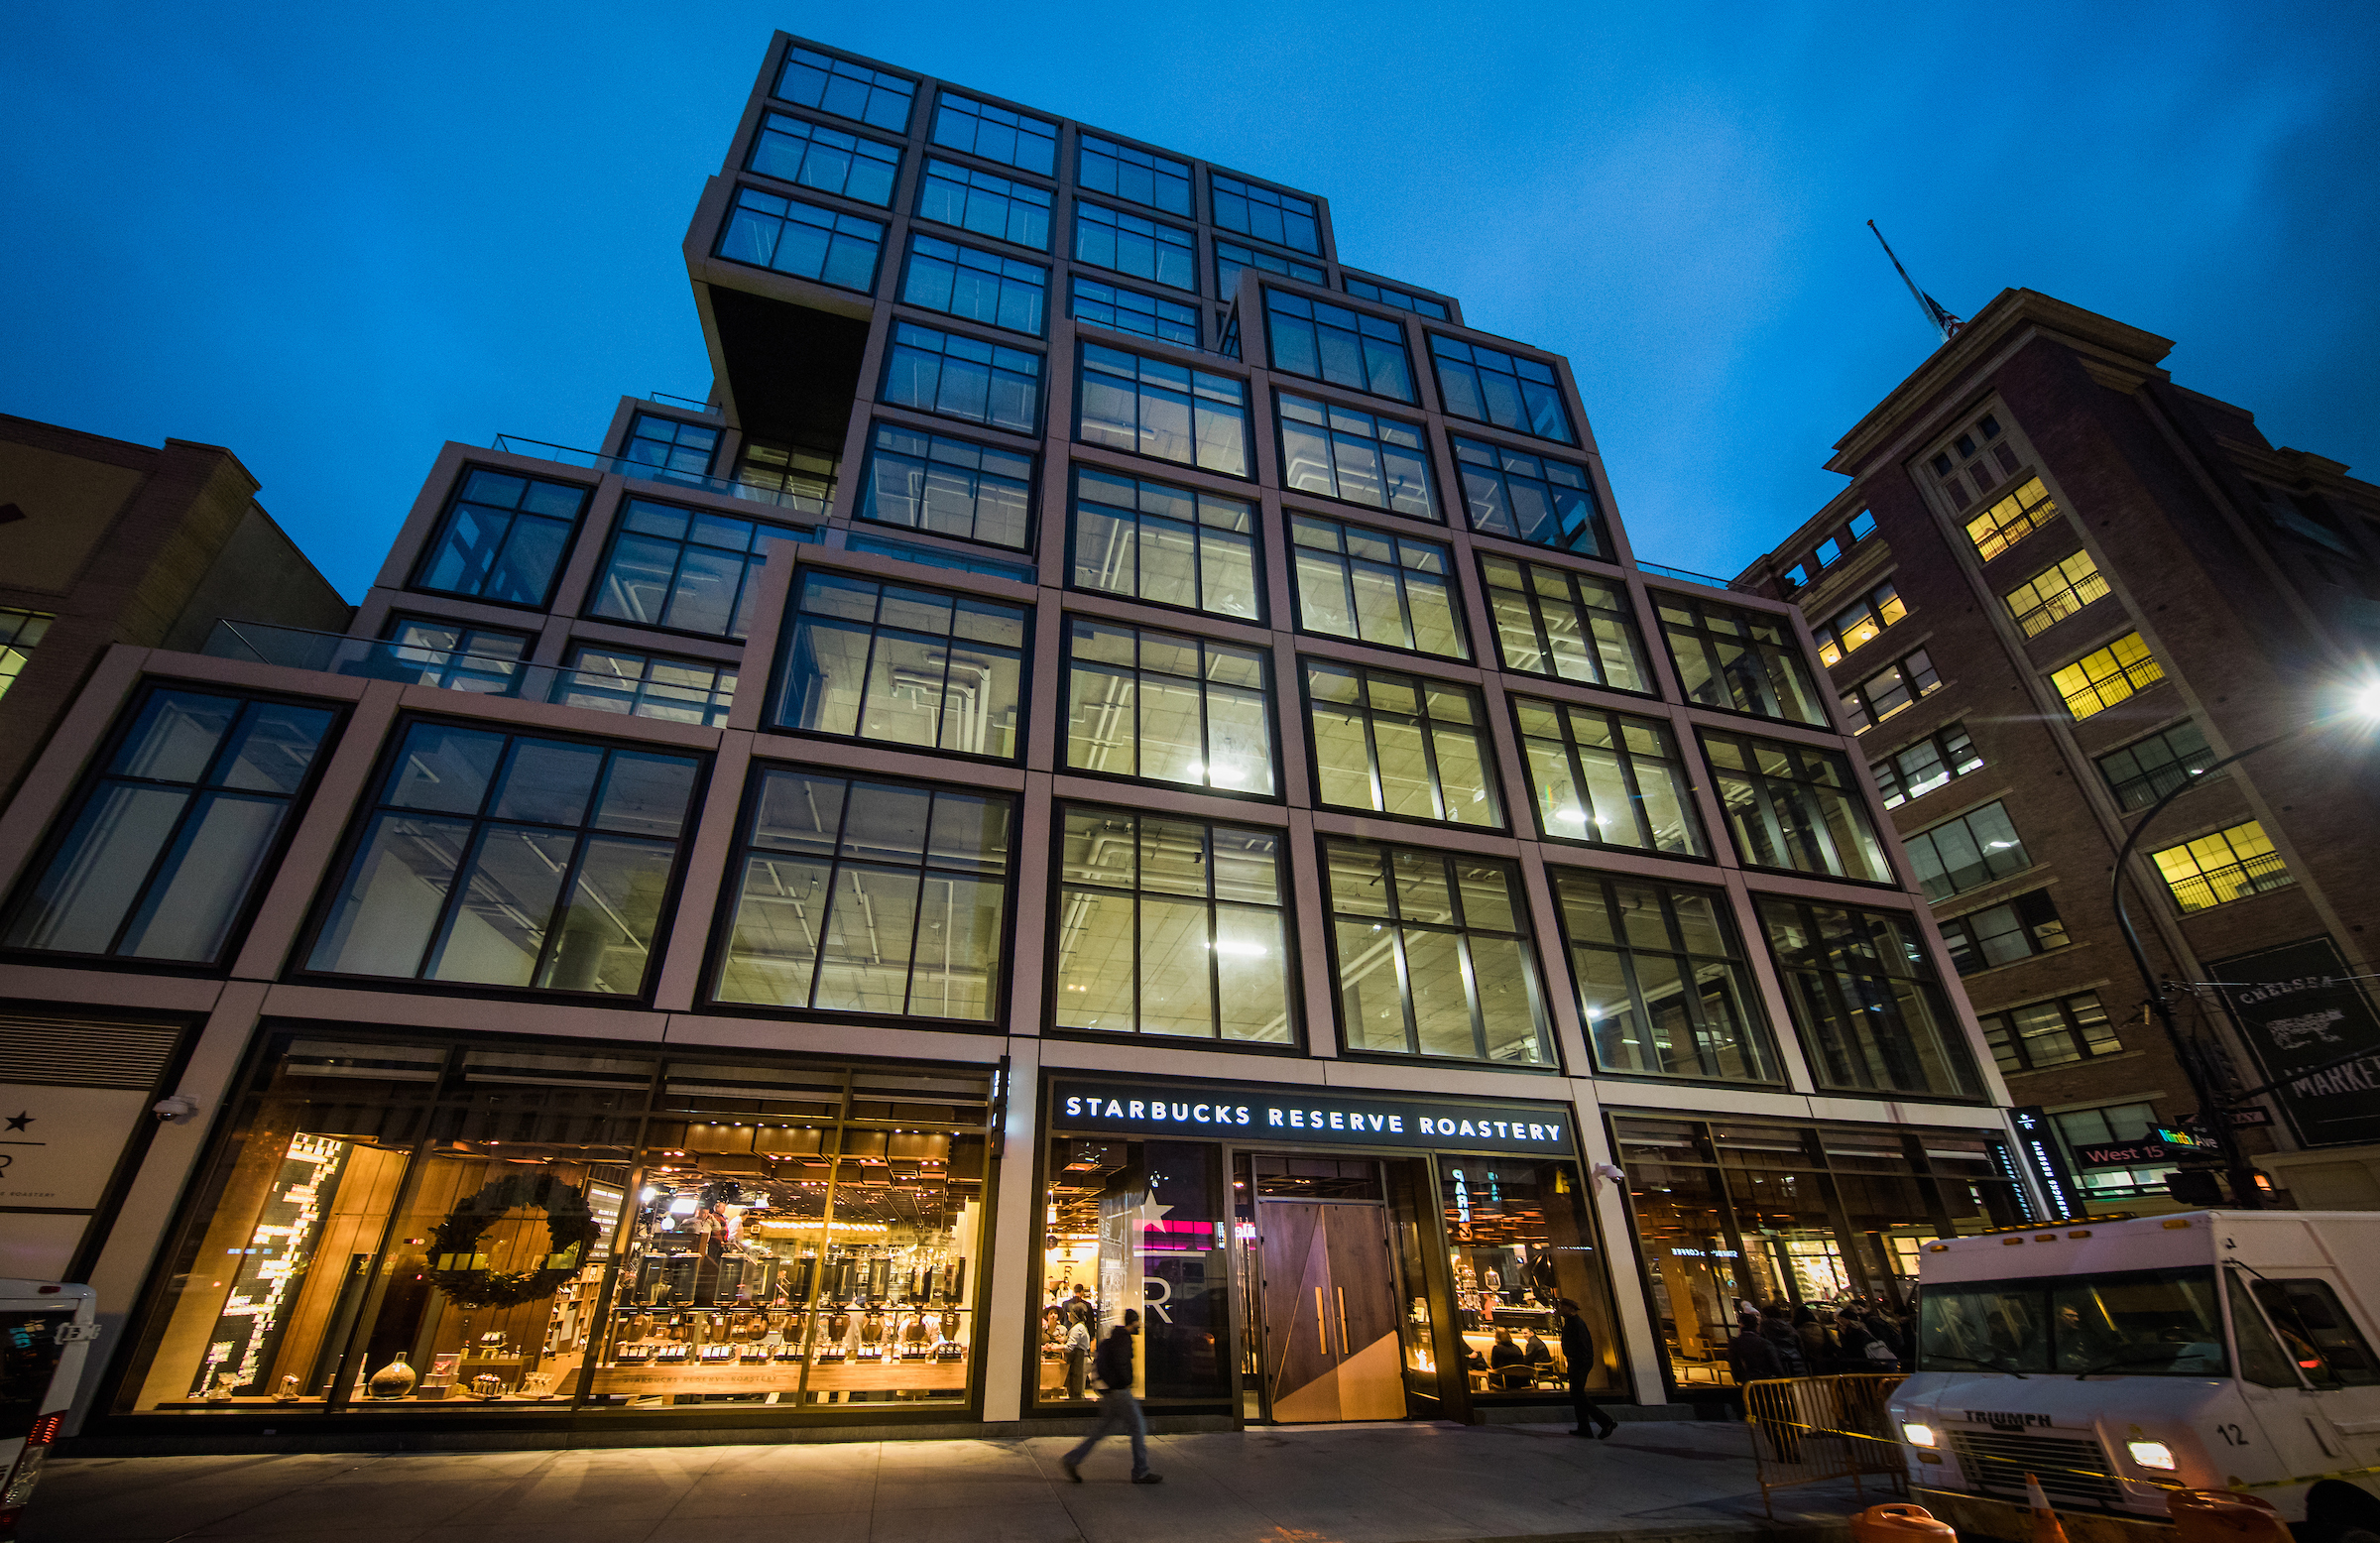 Starbucks Roastery Begins Its Unique New York State Of Grind